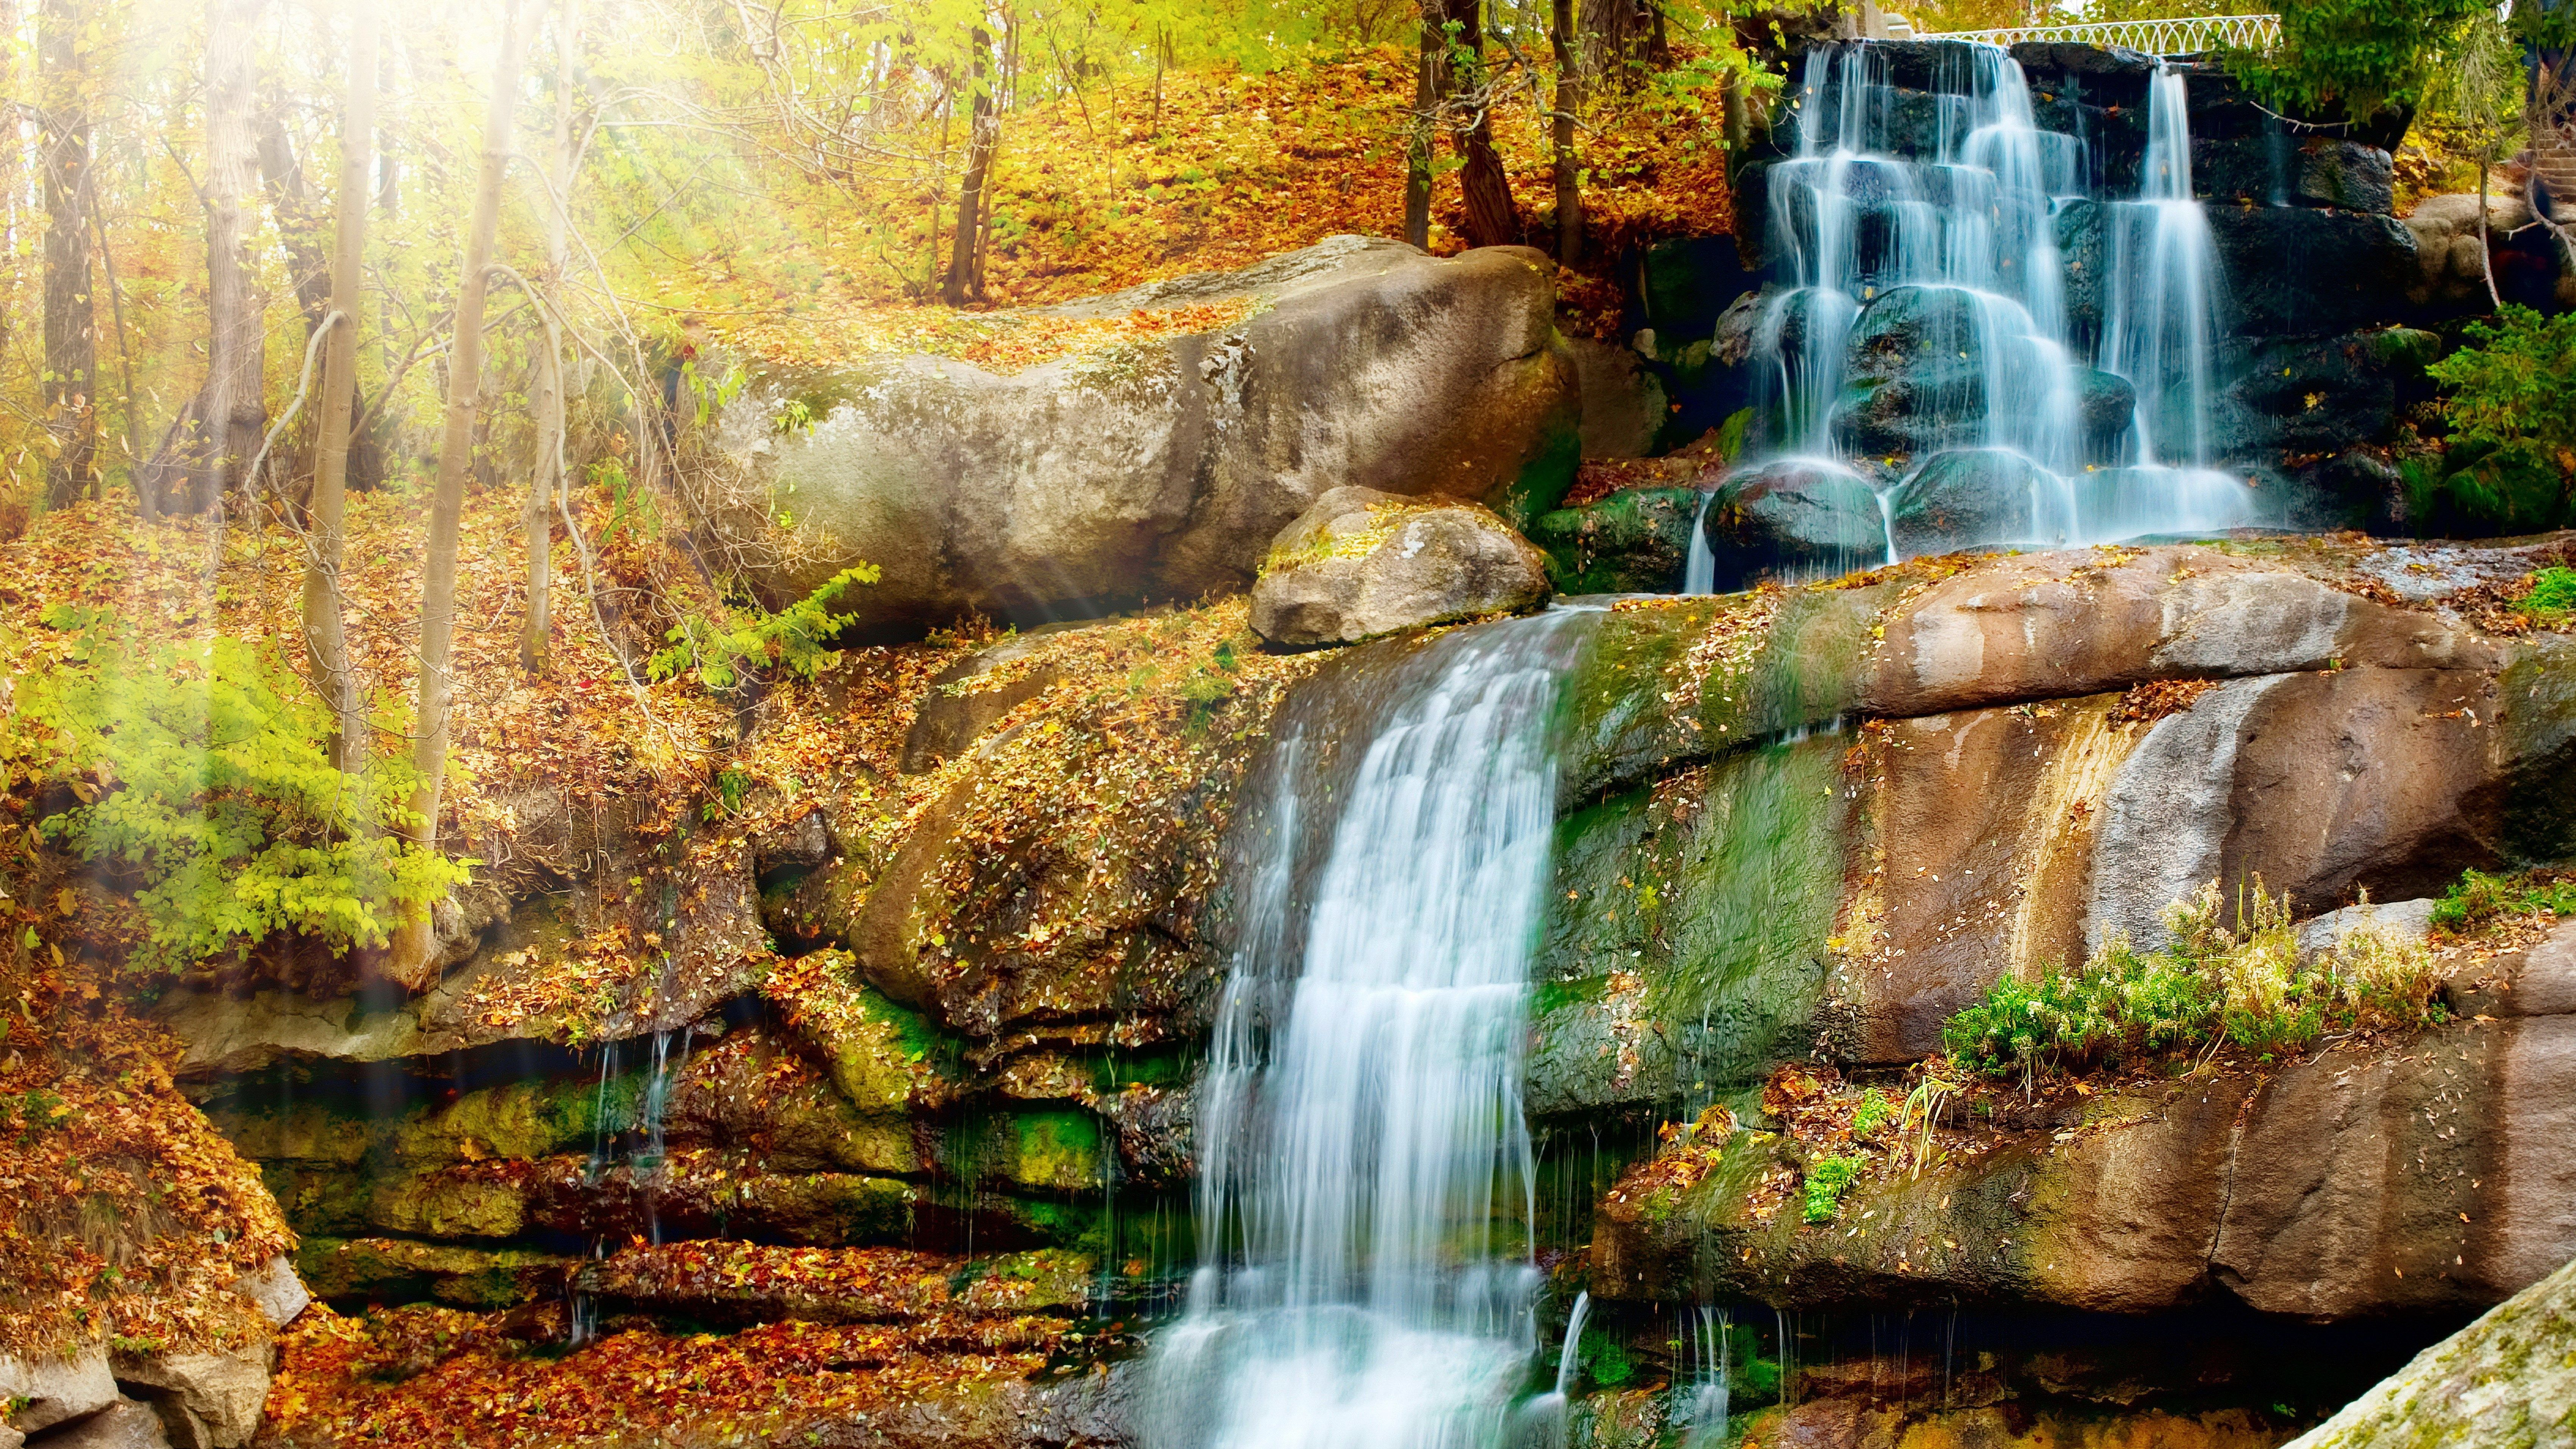 waterfall backgrounds for desktop hd backgrounds 6800x3825 7608 kb